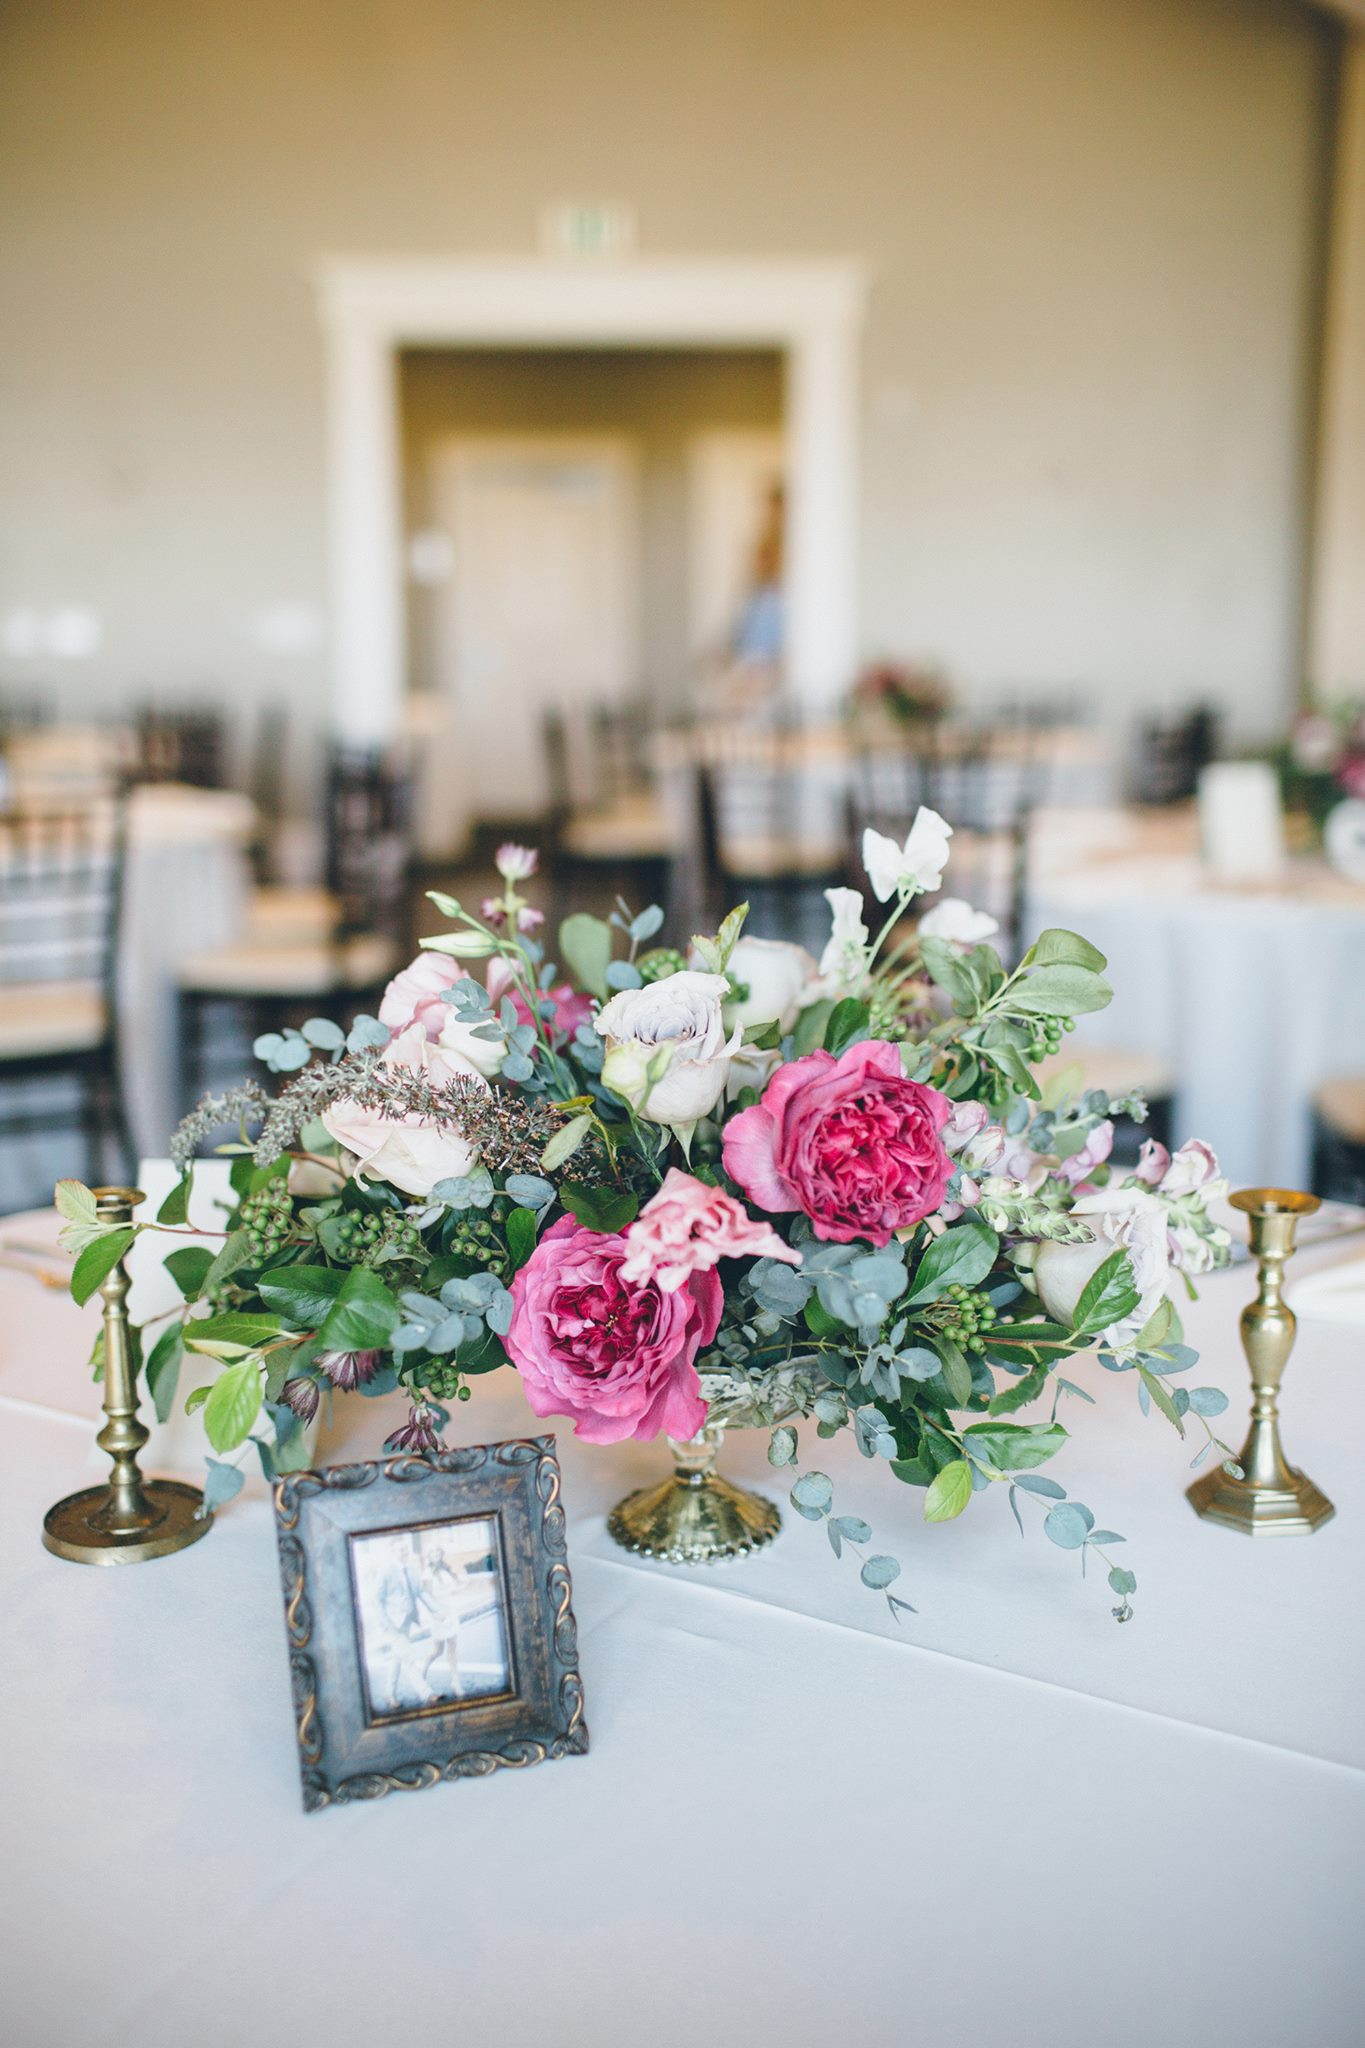 A mix of pinks and greenery is the perfect combination for a garden wedding. Read the blog to get more inspiration and the free garden venue guide for your own wedding day!